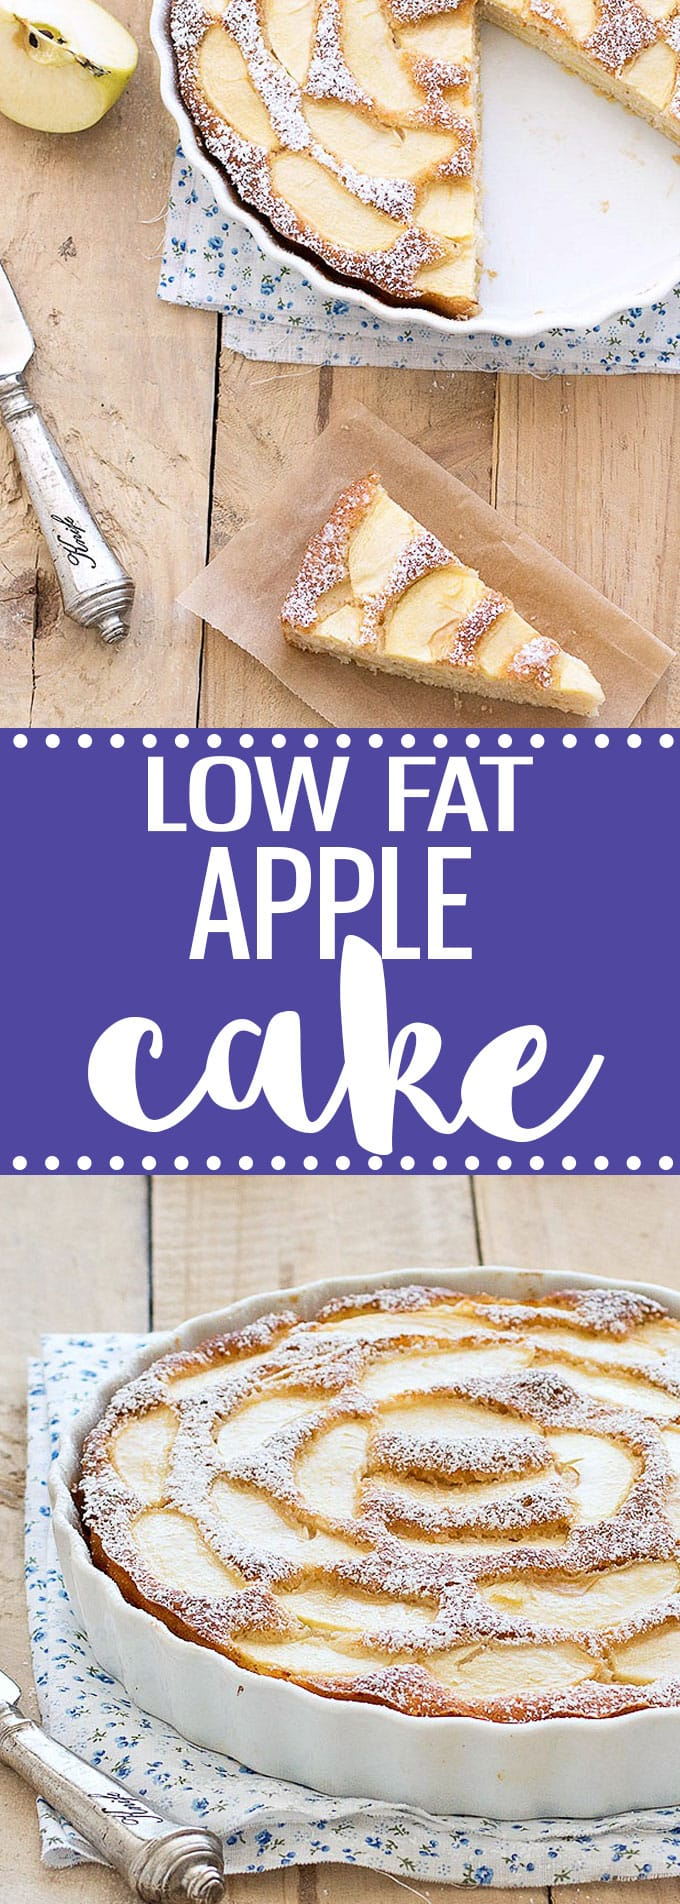 This low fat apple cake is super moist, flavorful and delicious! Plus, it's low in calories, it has no butter or oil.... that means you can enjoy more of it! #lowfat #applecake #cake #dessert #nobutter #italianfood #italianrecipes #easyrecipes #apples